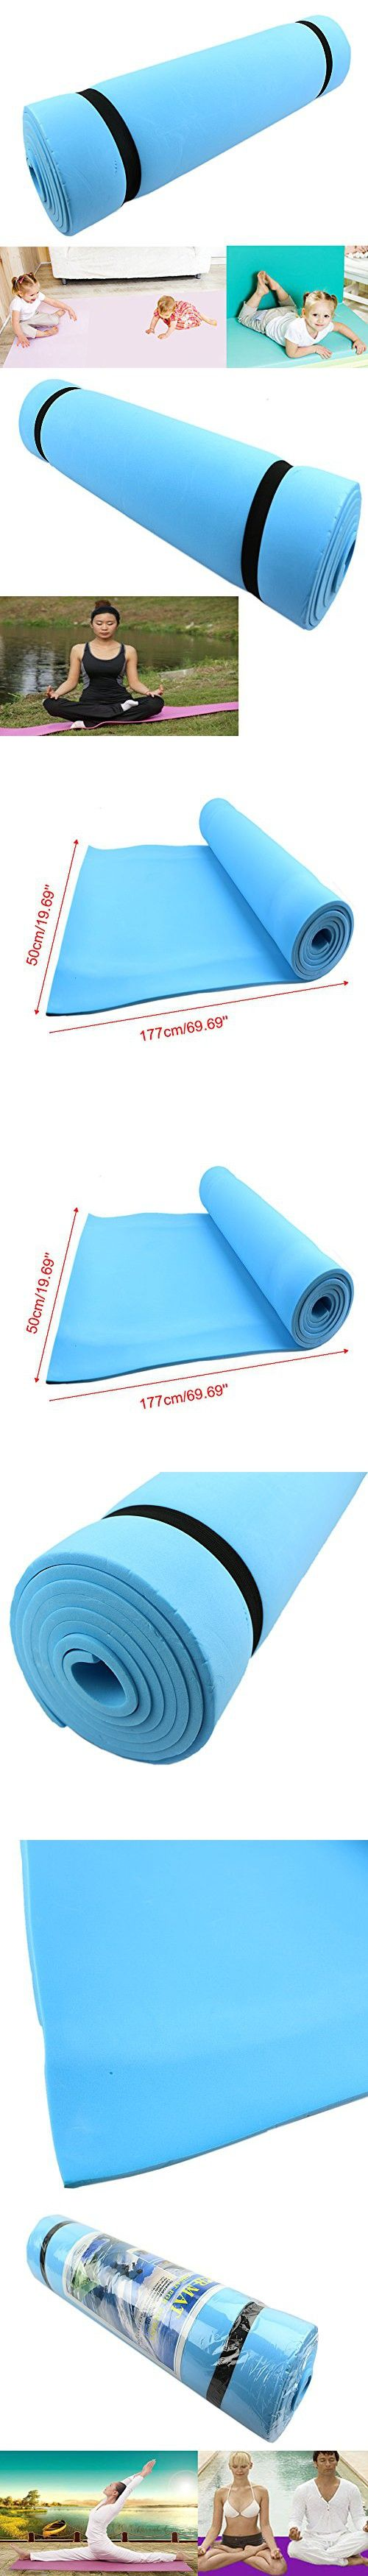 1PC New Eco-friendly Dampproof Sleeping Mattress Mat Exercise EVA Foam Yoga Pad